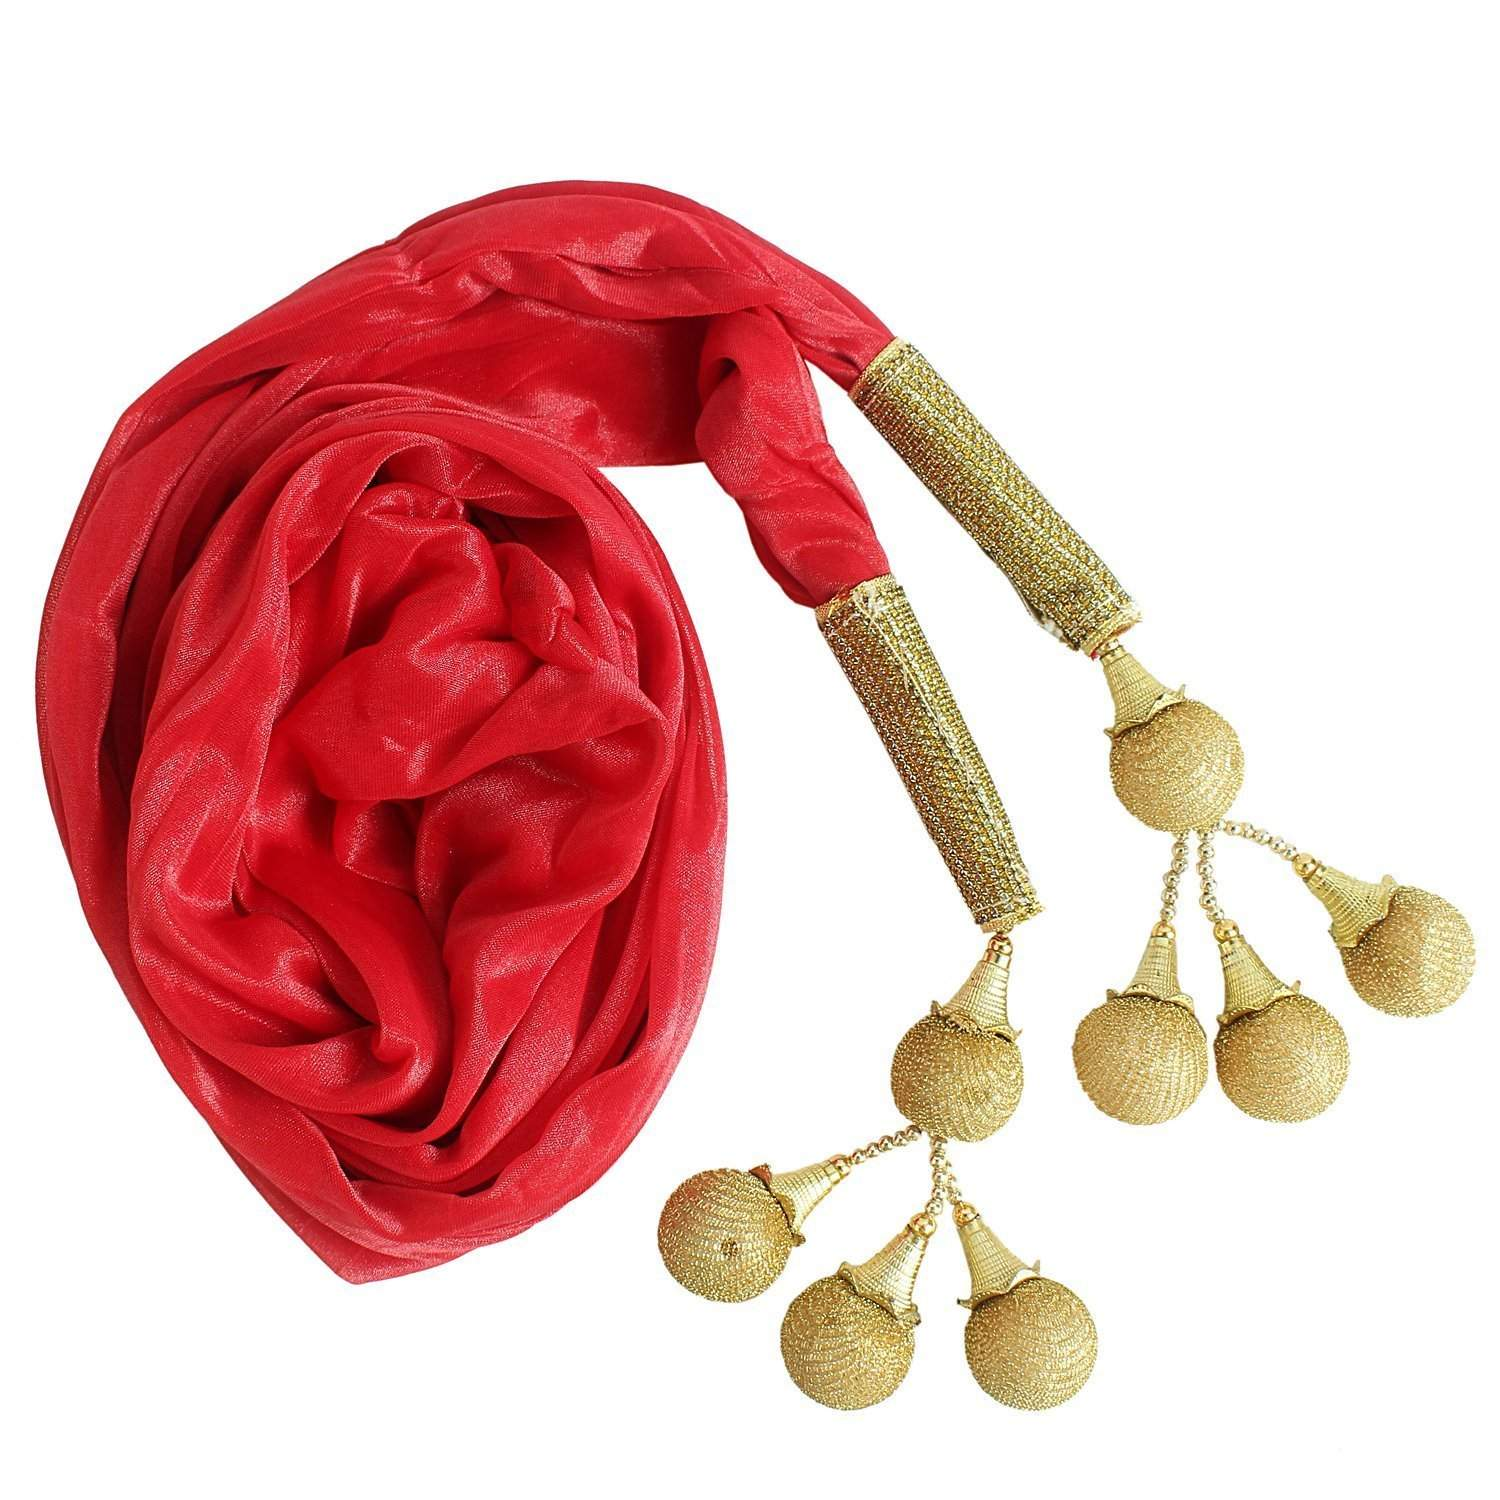 Woman's Dupatta with Pom Pom Lace (Red) - Bagaholics Gift